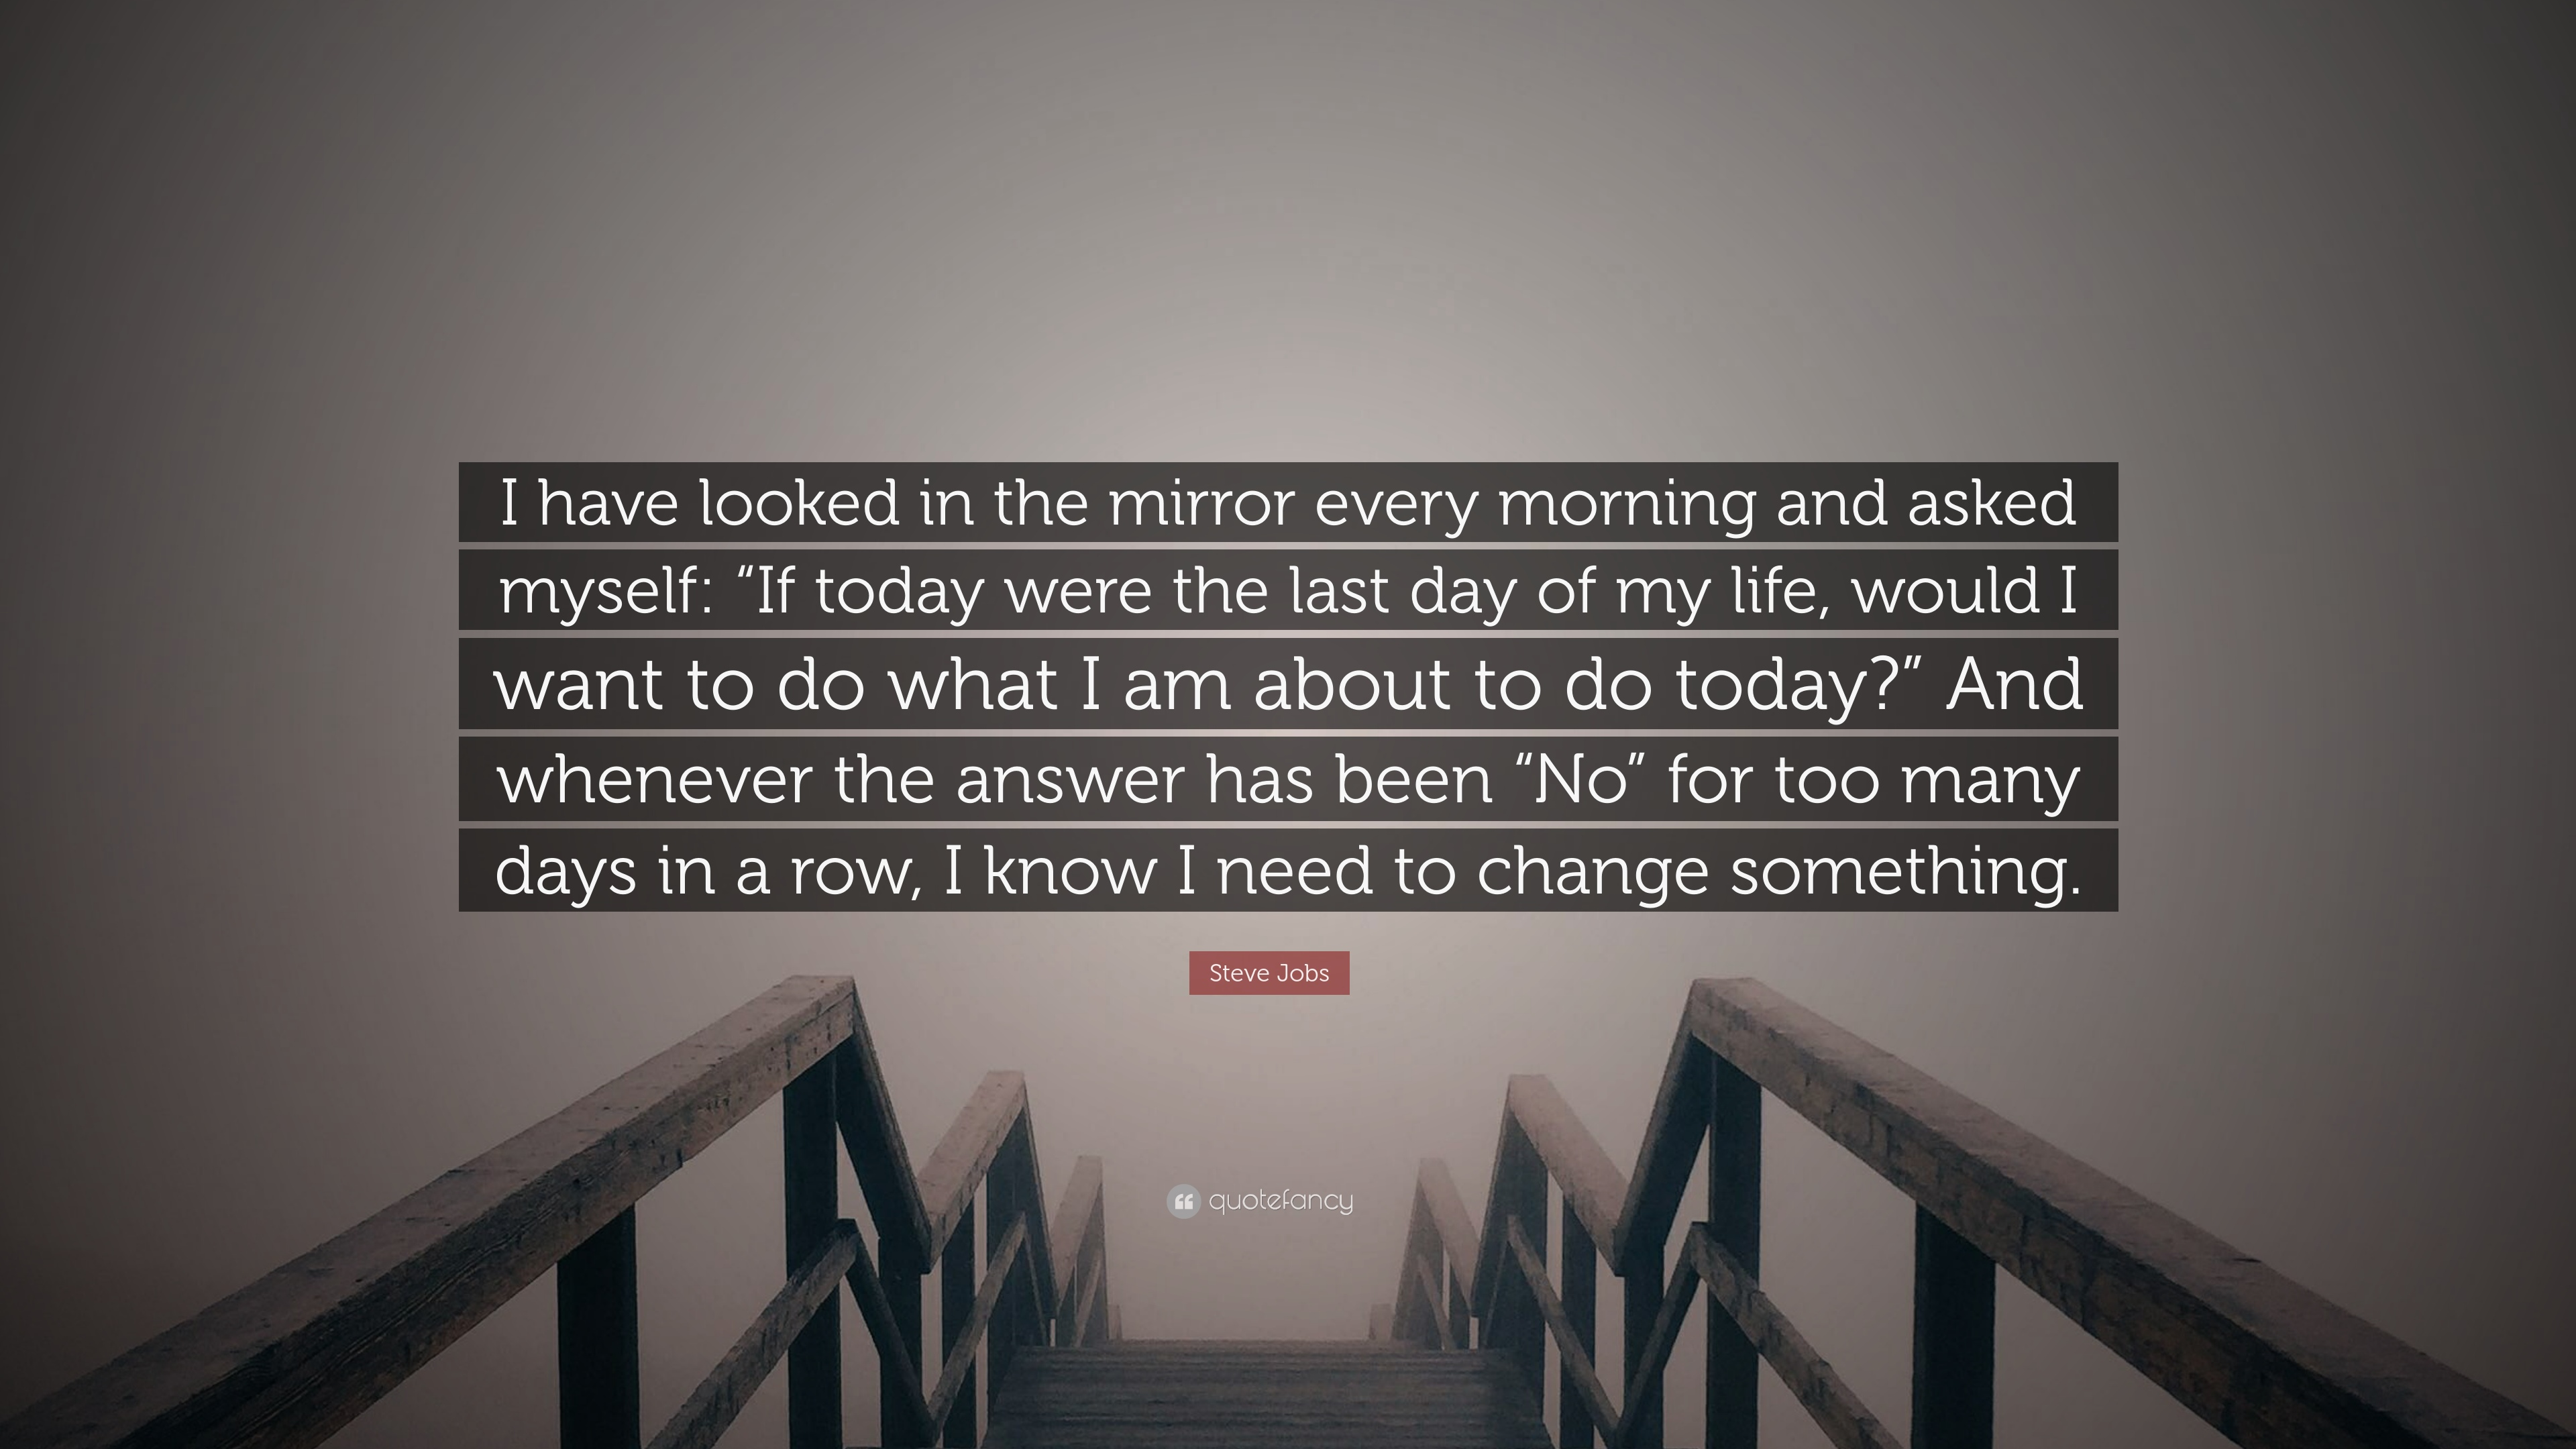 steve jobs quote i have looked in the mirror every morning and asked myself